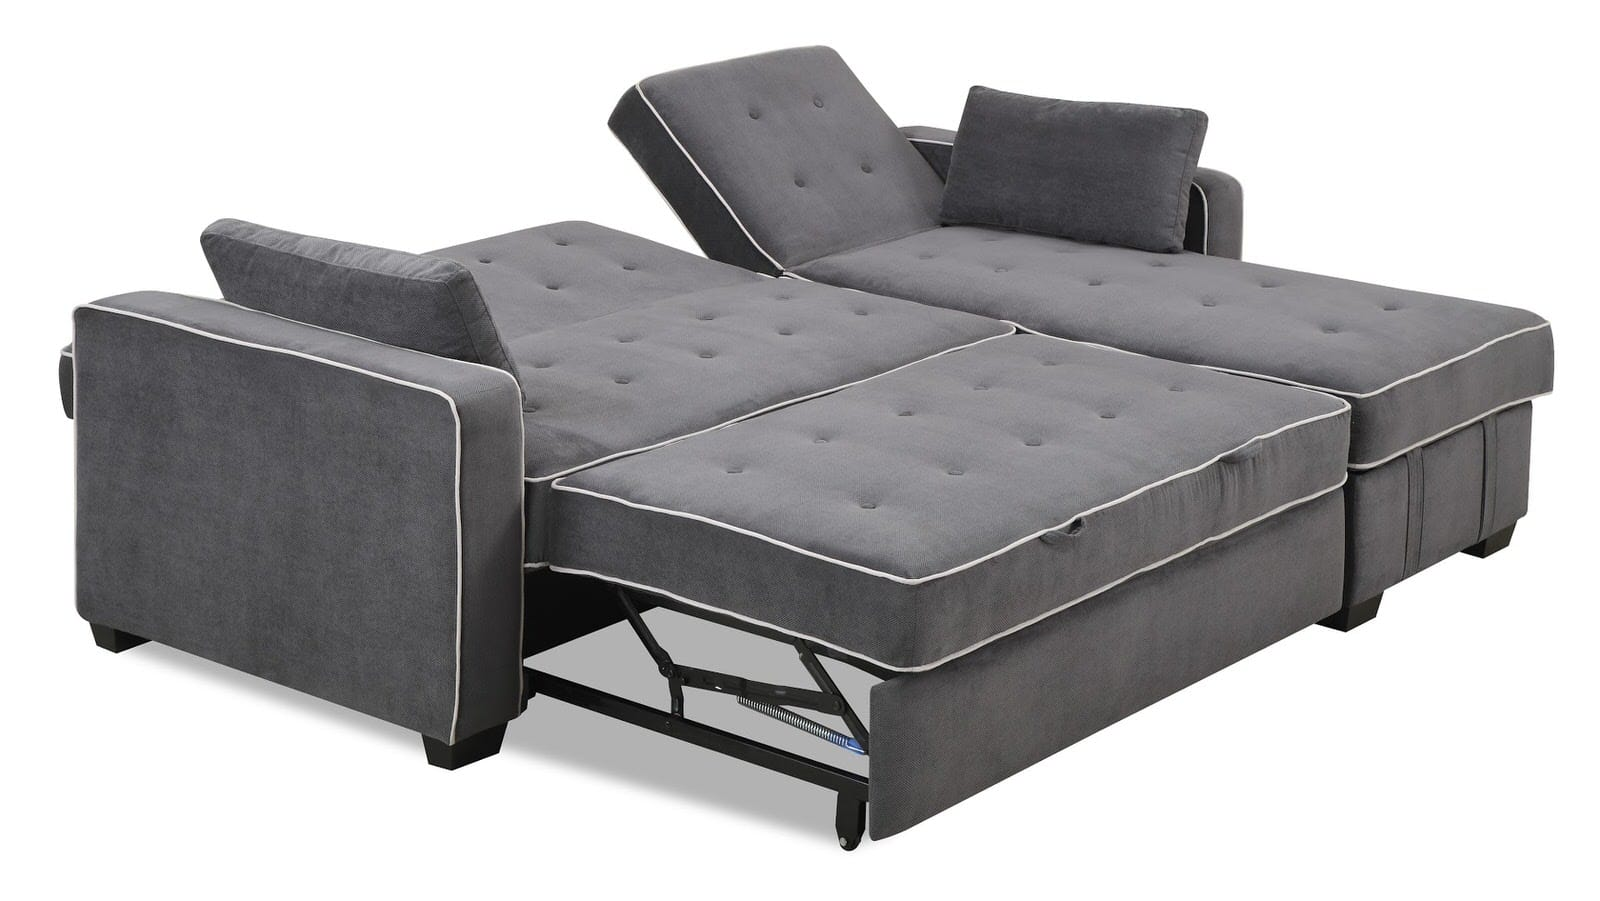 Augustine King Size Sofa Bed Moon Grey by Serta Lifestyle : JaquelineLeideninCharcoalGreyBedChaiseAngled from www.functionalfurniturenyc.com size 1600 x 901 jpeg 203kB